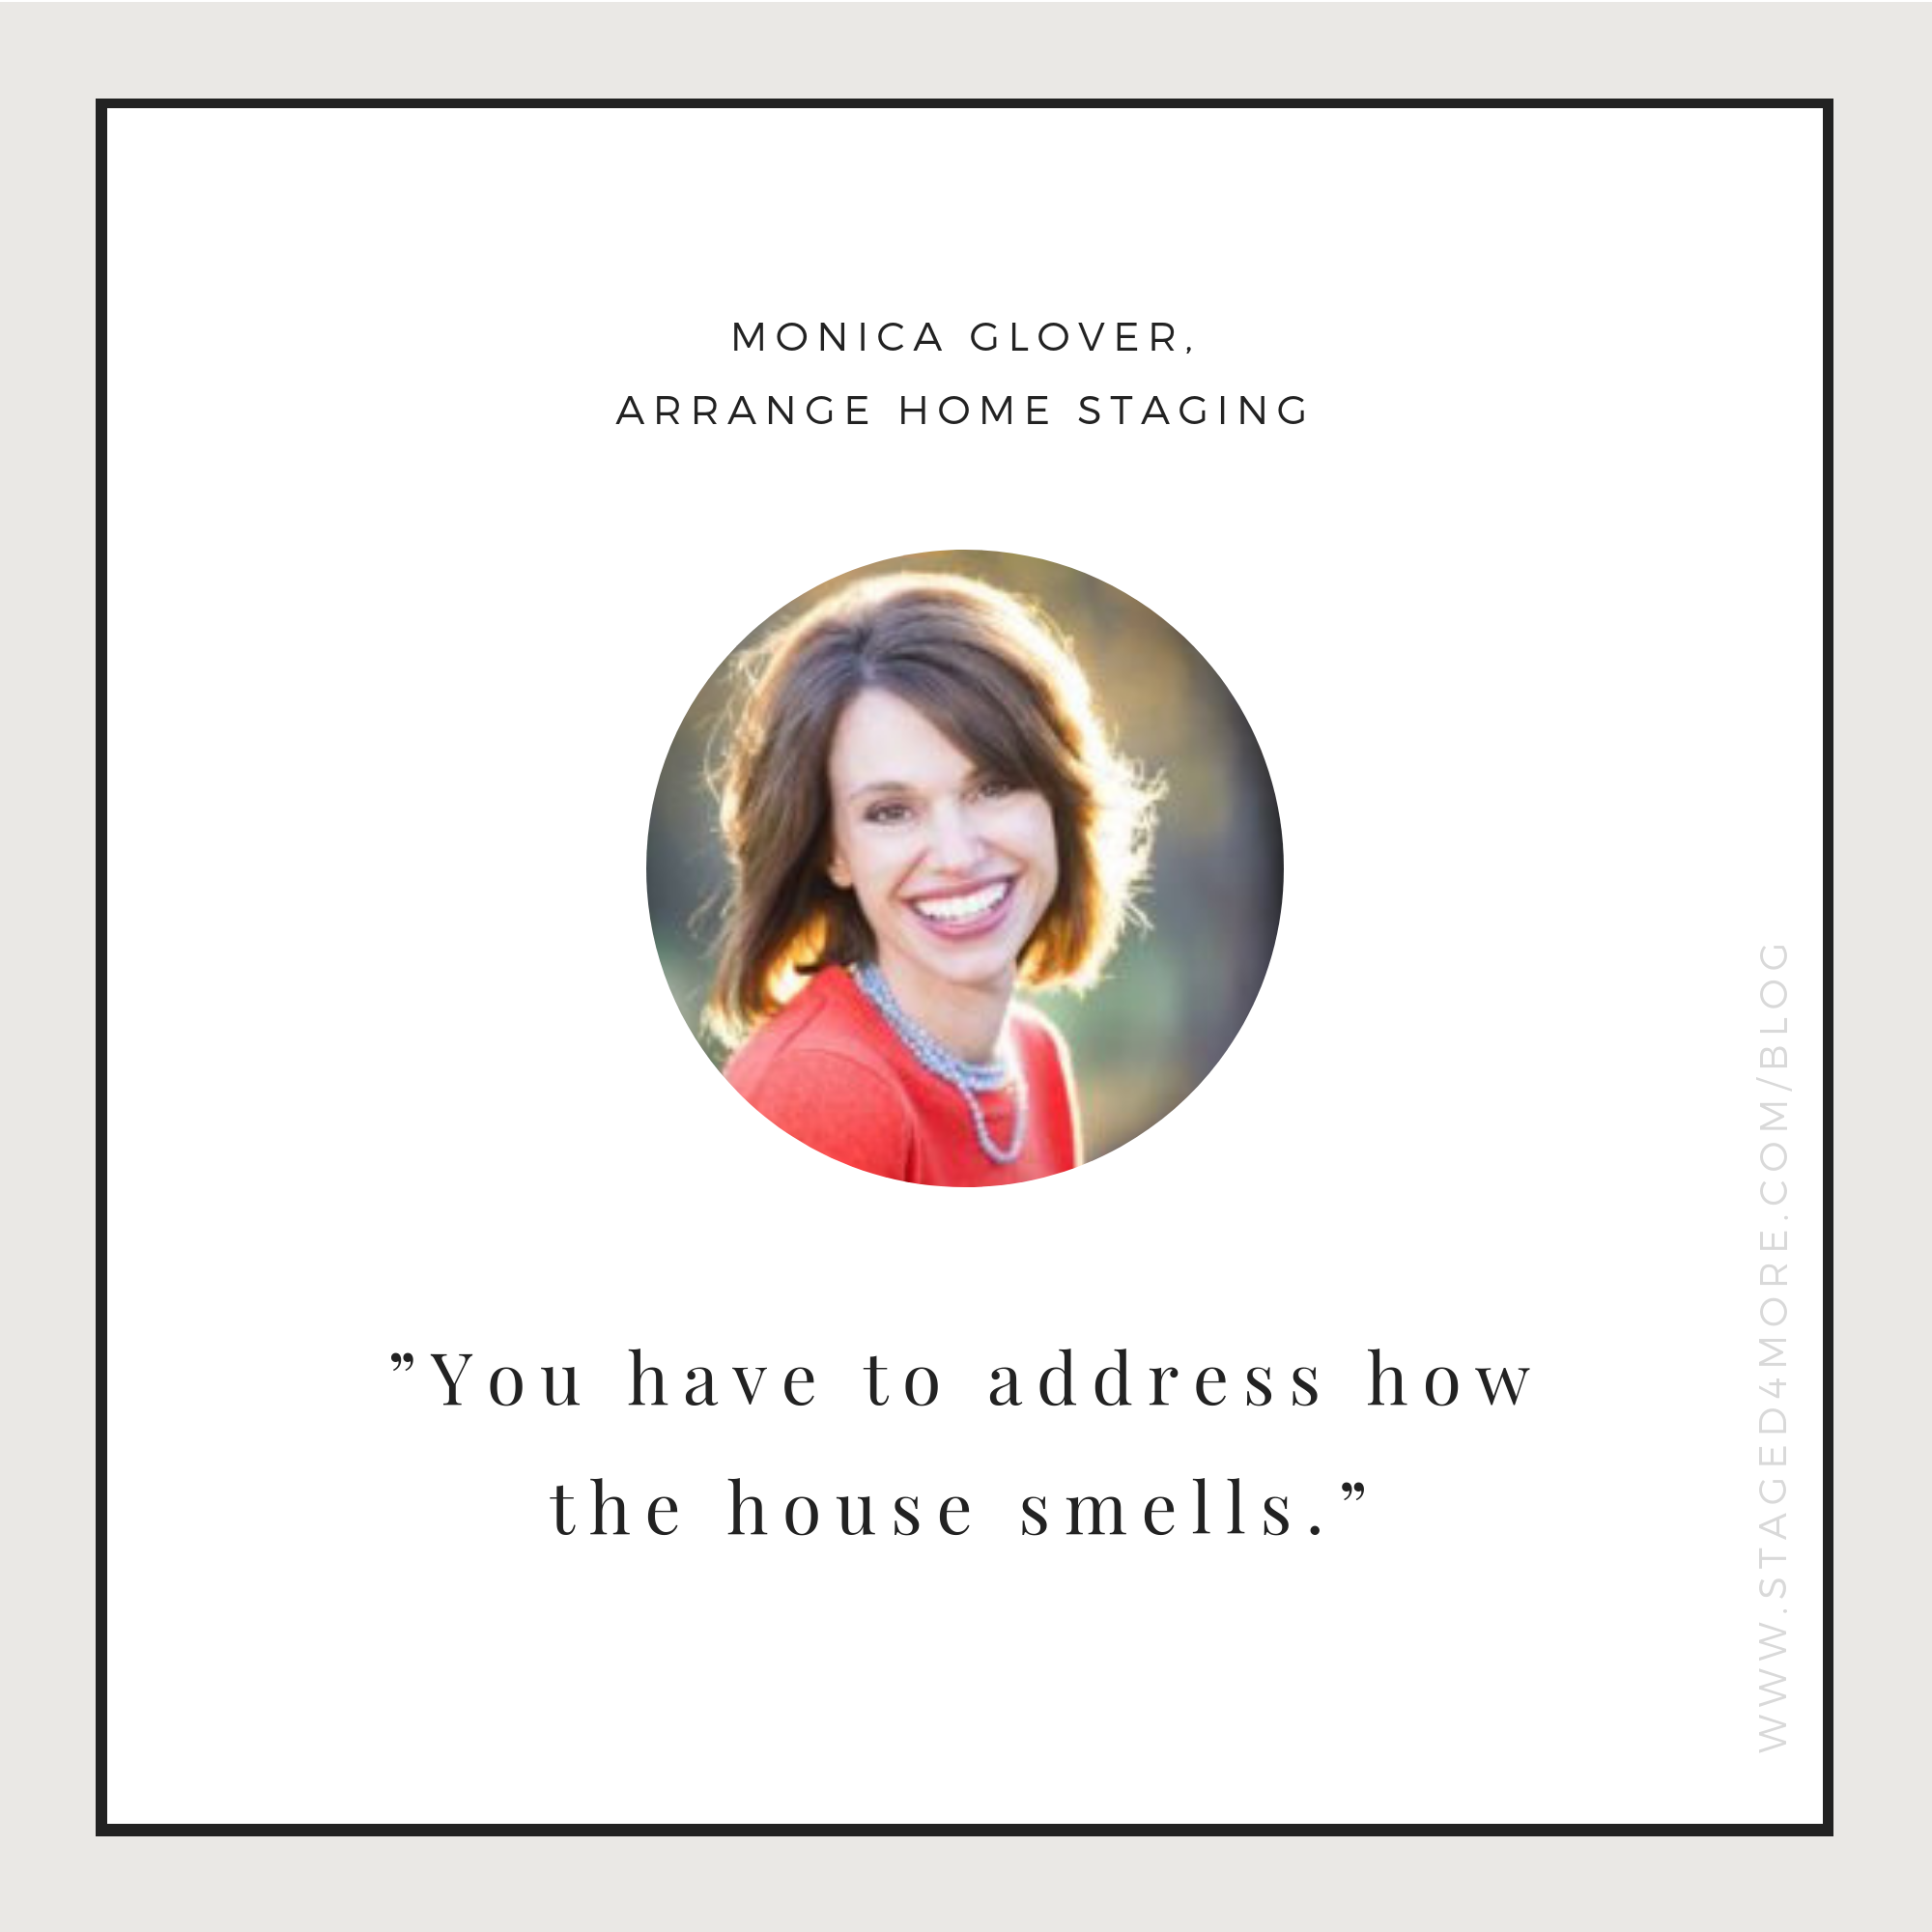 How to live in a staged home. Expert tips from Monica Glover of Arrange Home Staging. Home staging blog by Staged4more School of Home Staging